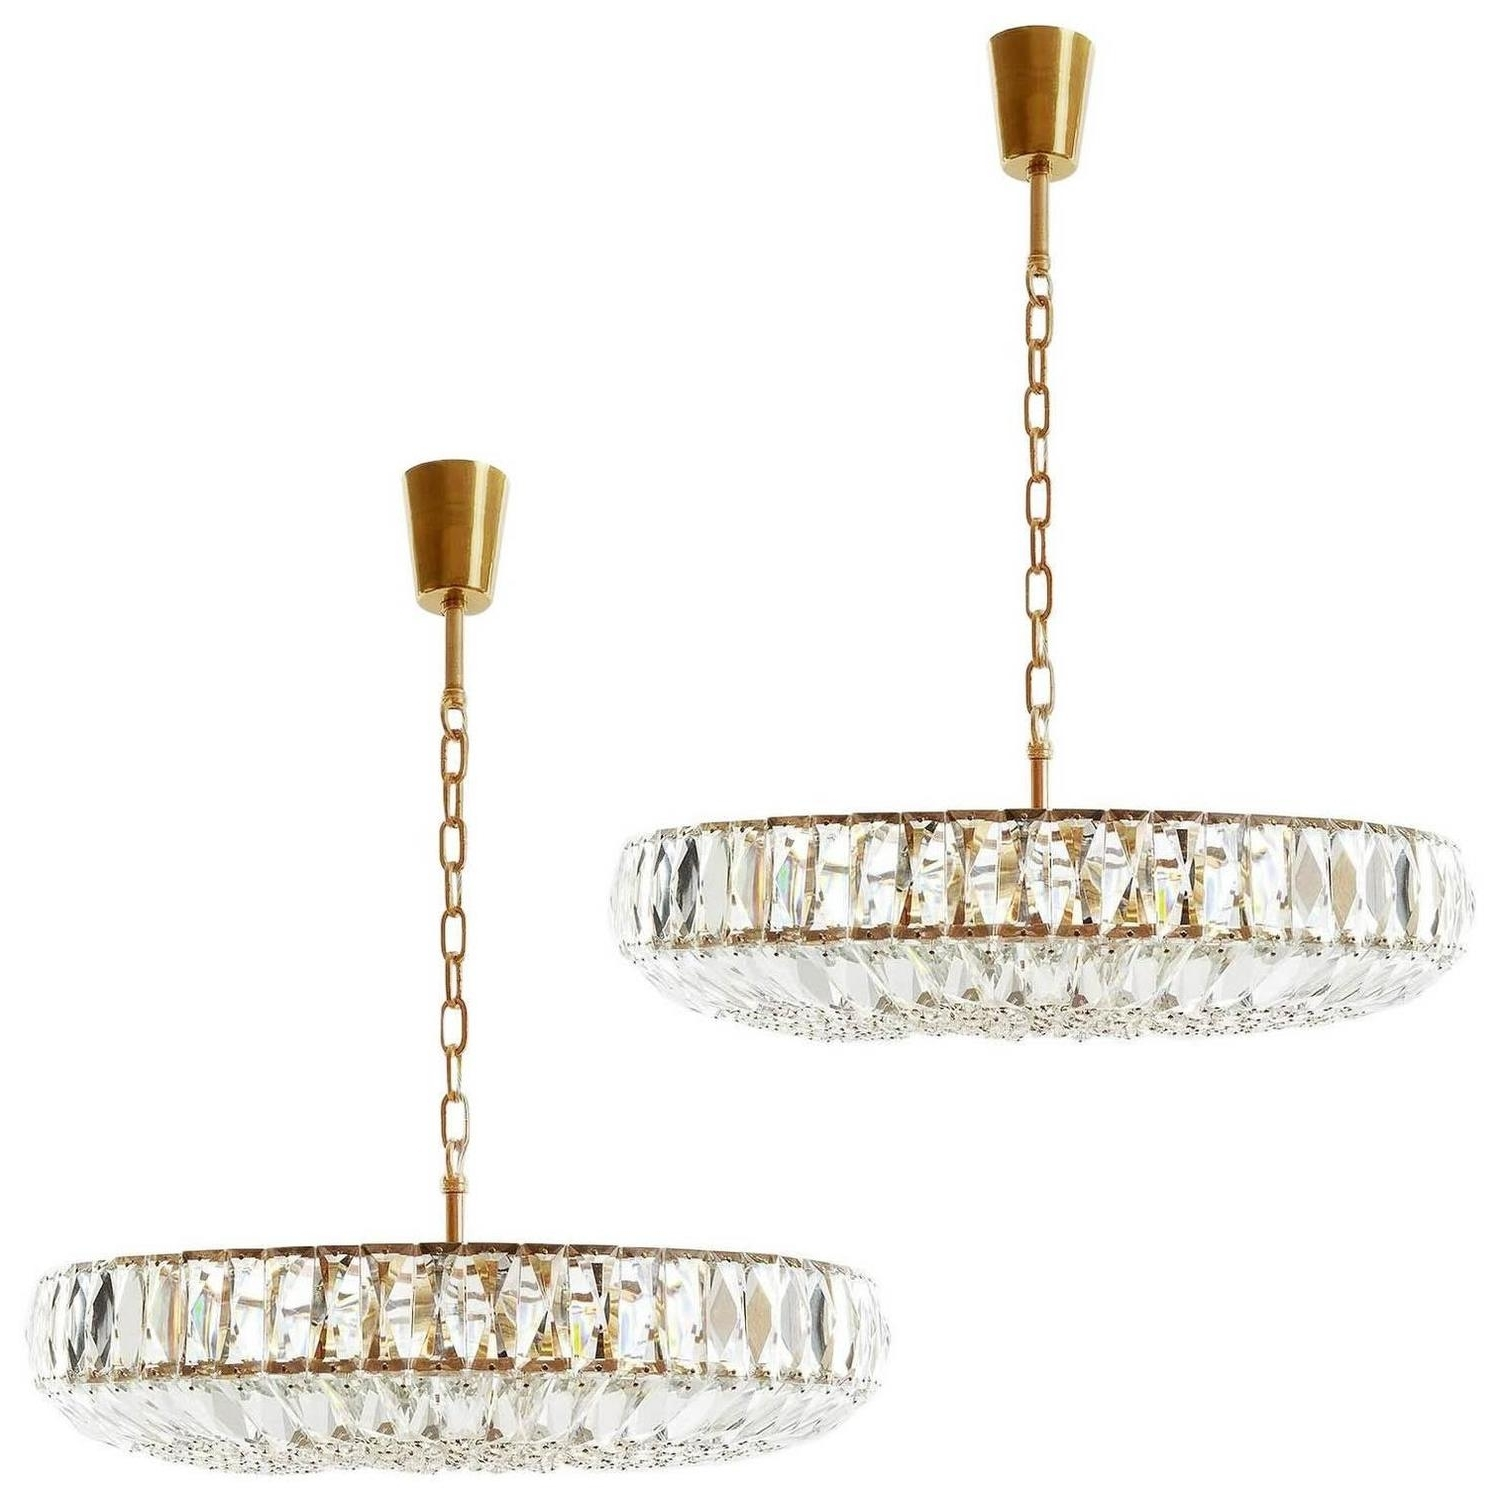 Gold Modern Chandelier With Regard To Most Up To Date Pair Of Bakalowits Style Chandeliers, Gold Brass Crystal, Austria (Gallery 16 of 20)